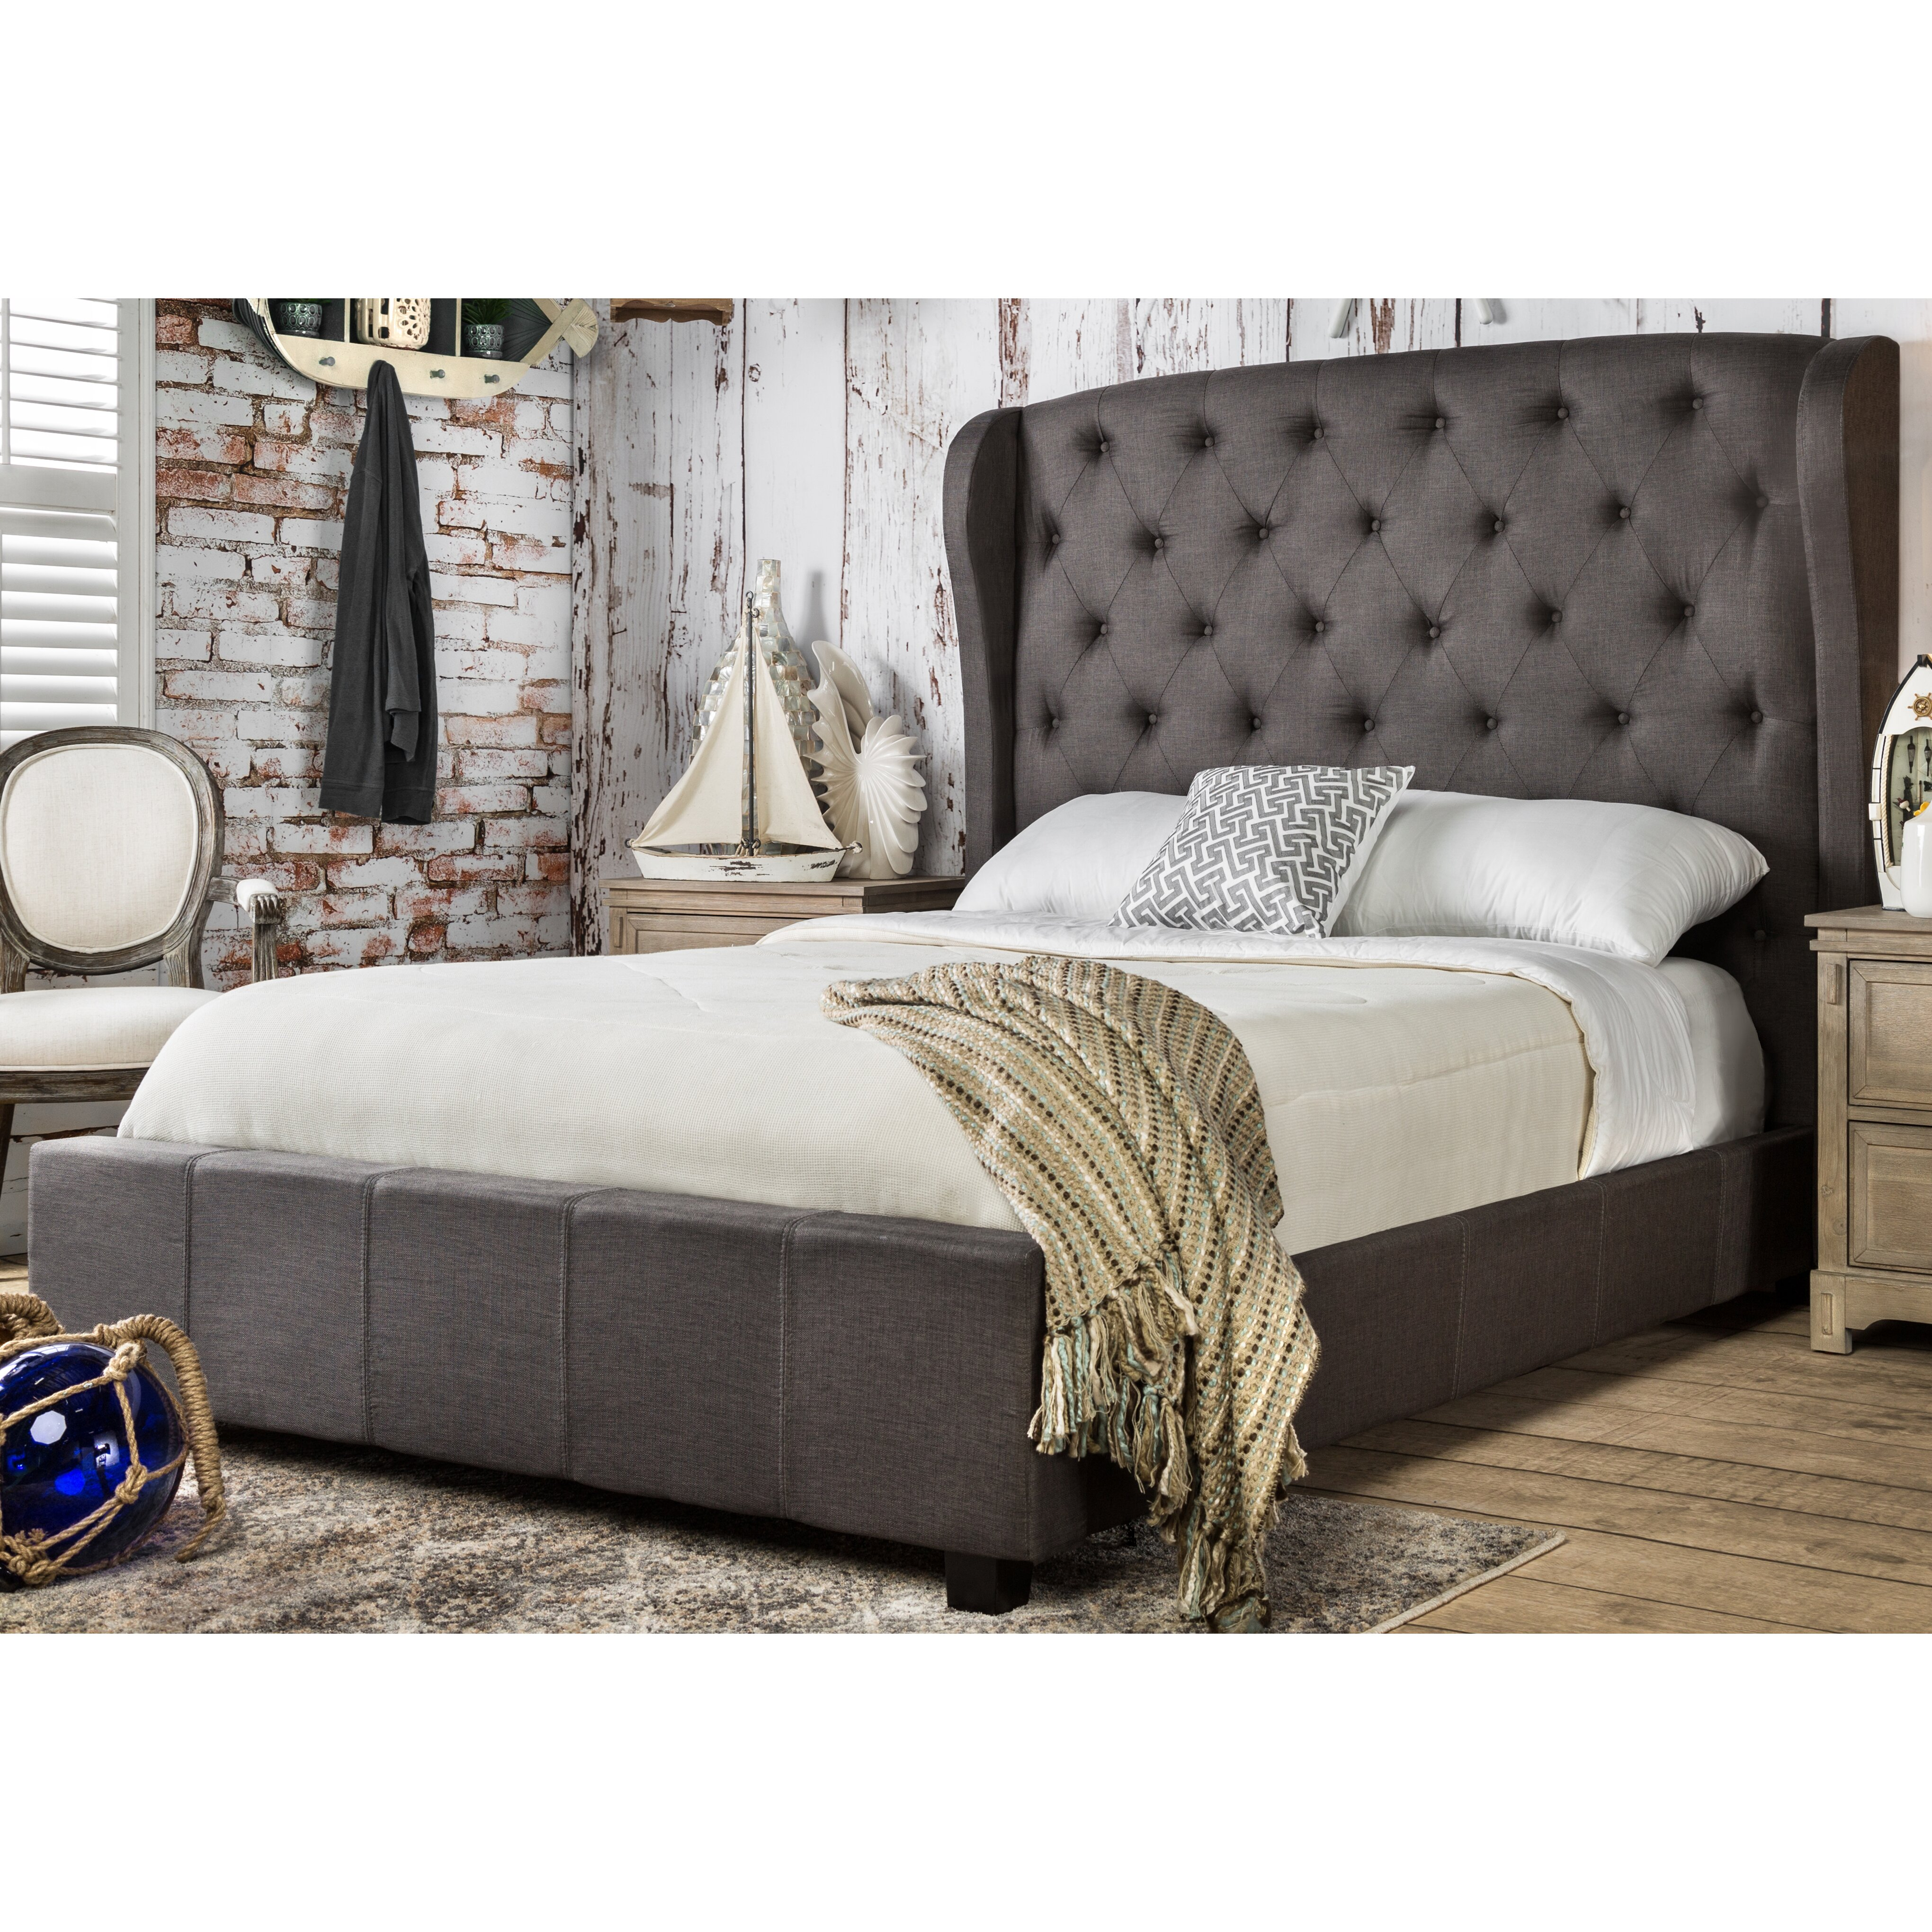 Mckenzie Bedroom Furniture Mckenzie Upholstered Platform Bed Reviews Joss Main